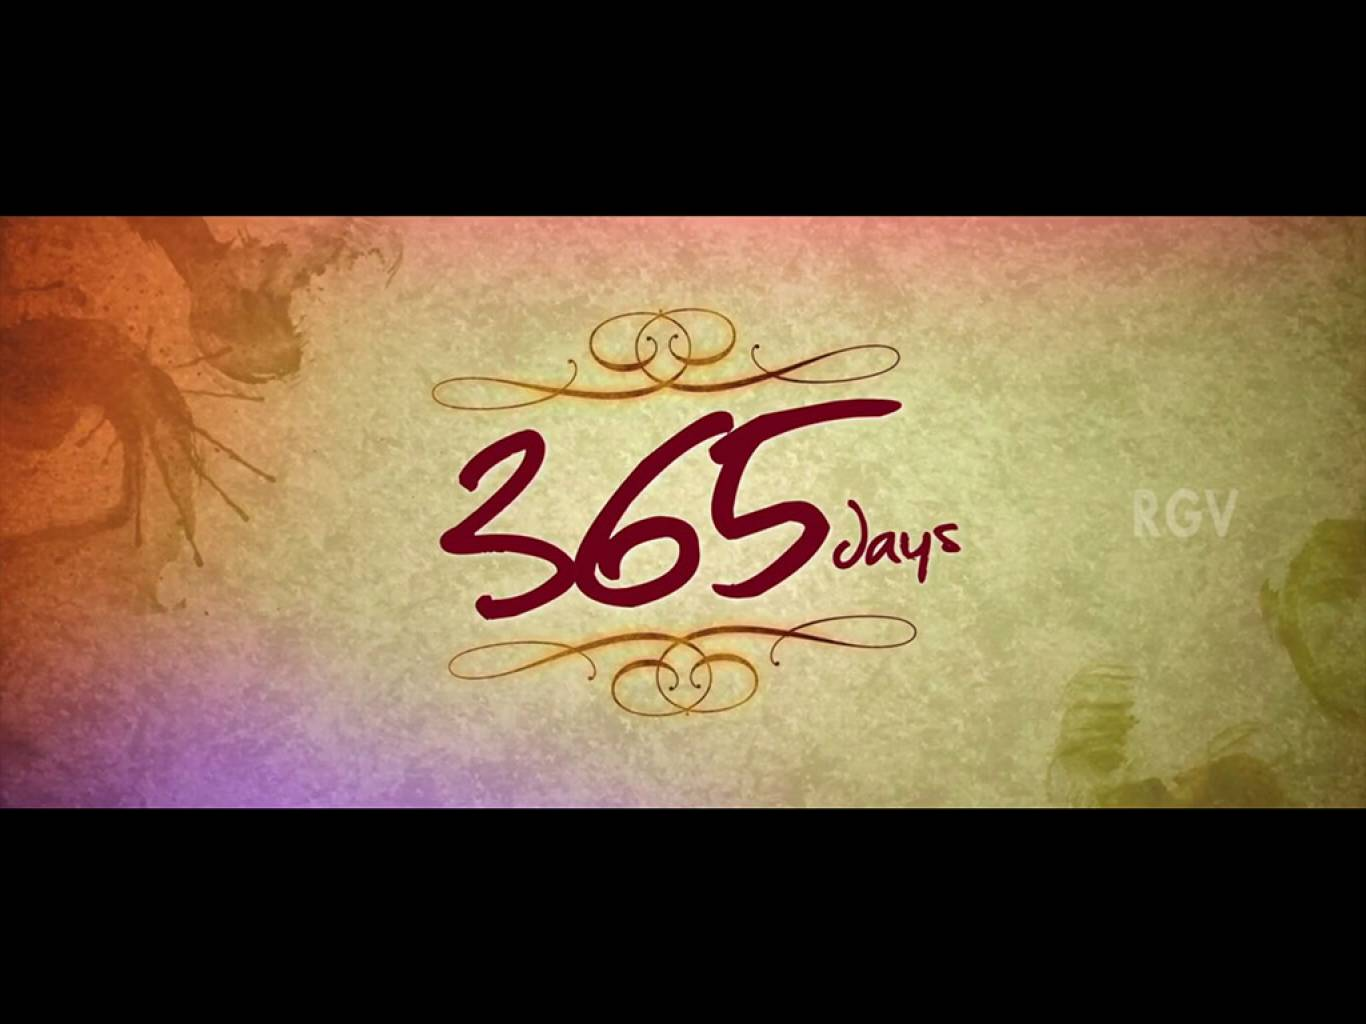 365 Days Movie HD Wallpapers 365 Days HD Movie Wallpapers 1366x1024